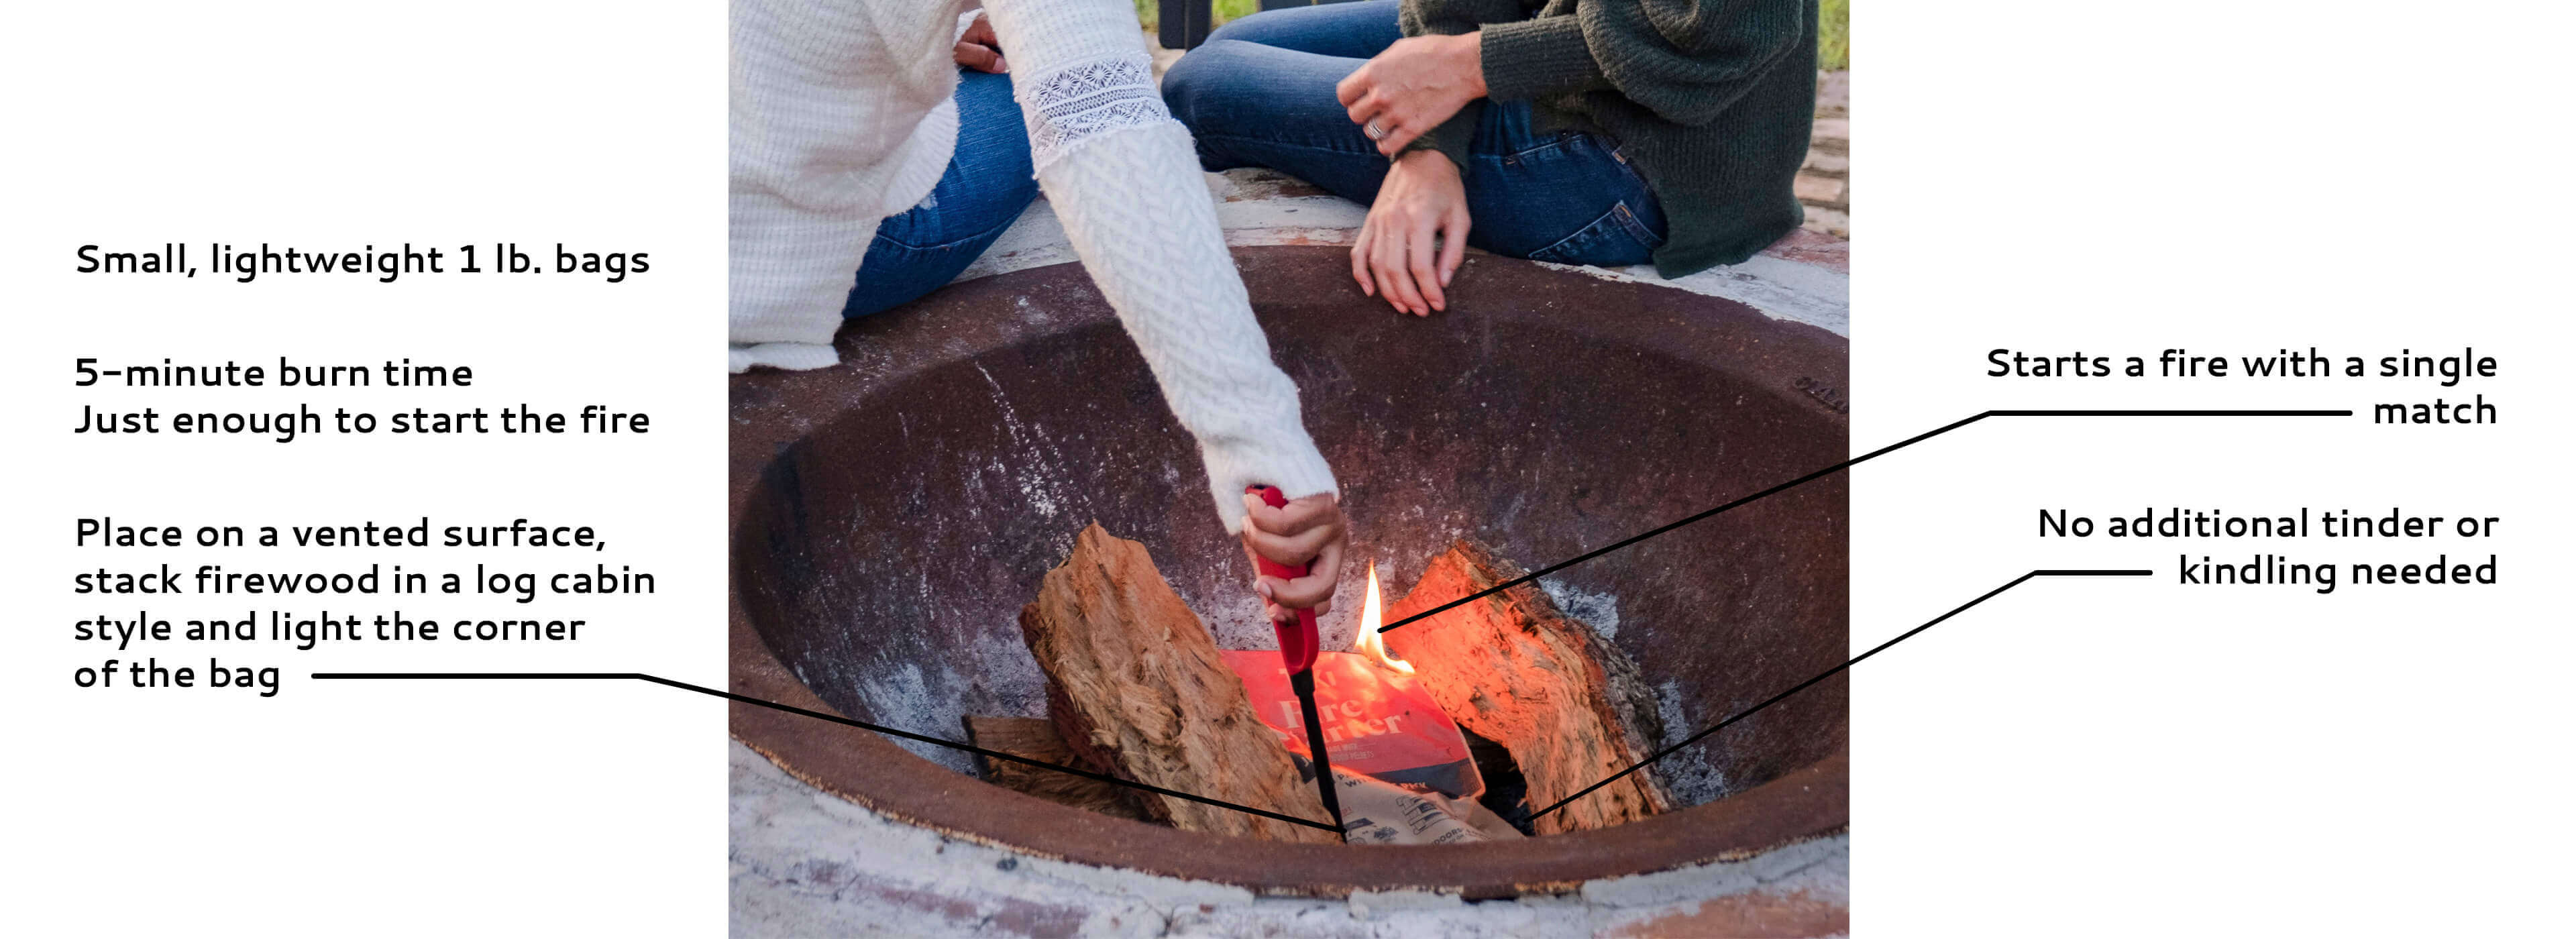 small lightweight bags, 5-minute burn time, no additional tinder or kindling needed, start fire bonfire campfire with a single match